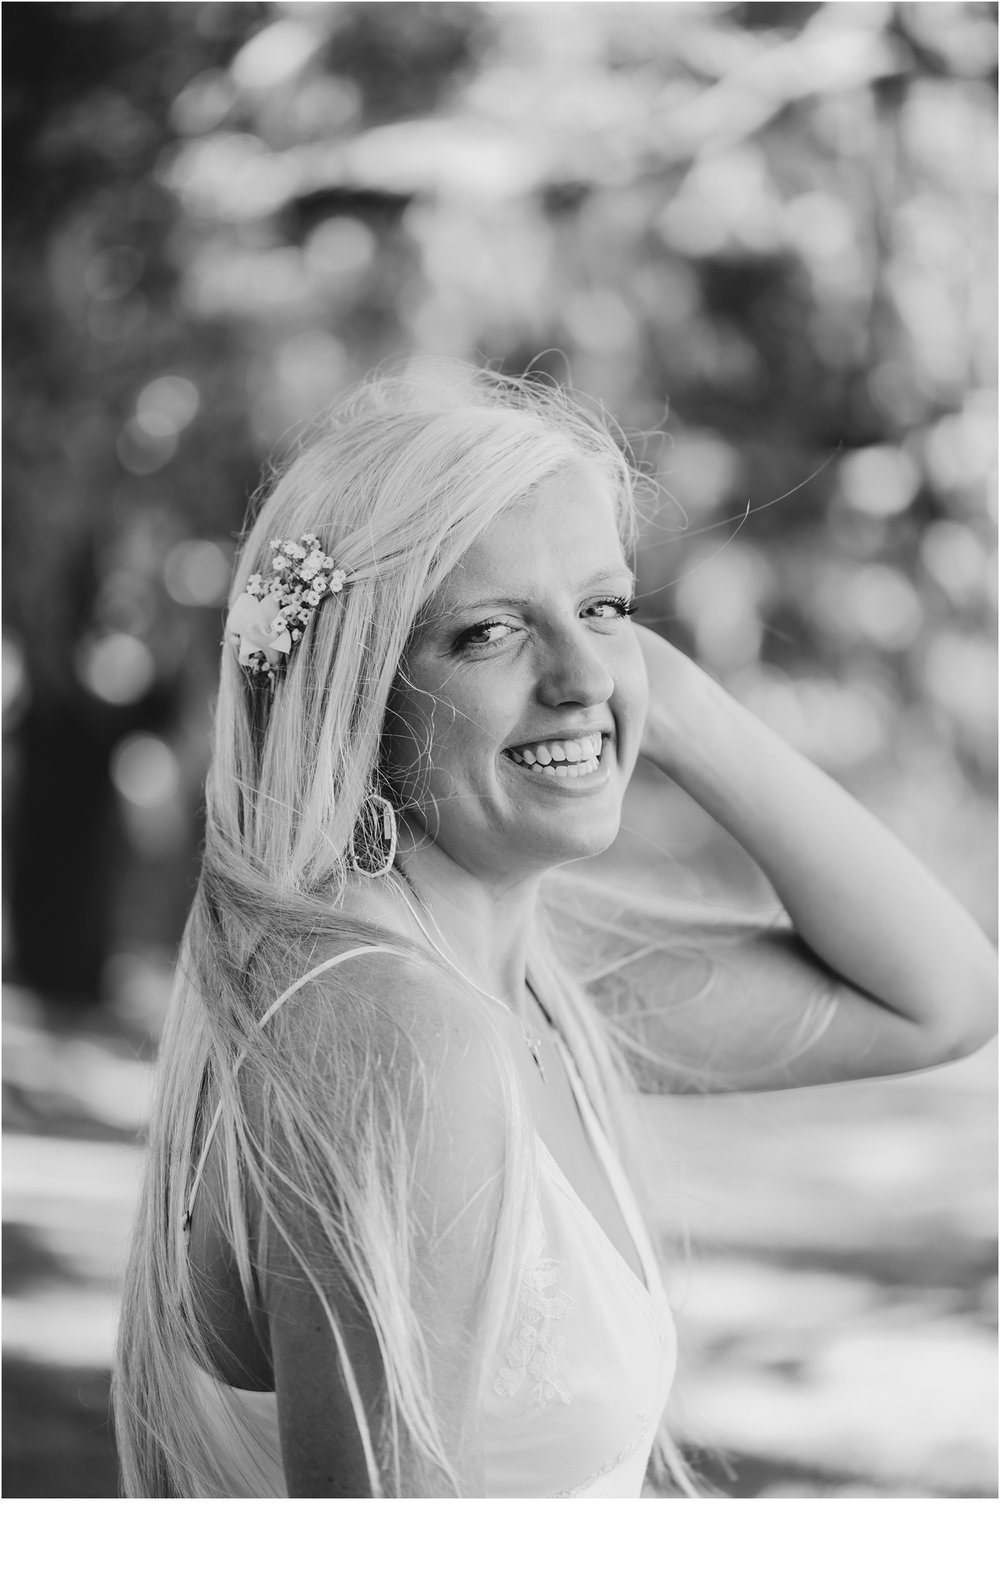 Rainey_Gregg_Photography_St._Simons_Island_Georgia_California_Wedding_Portrait_Photography_1119.jpg